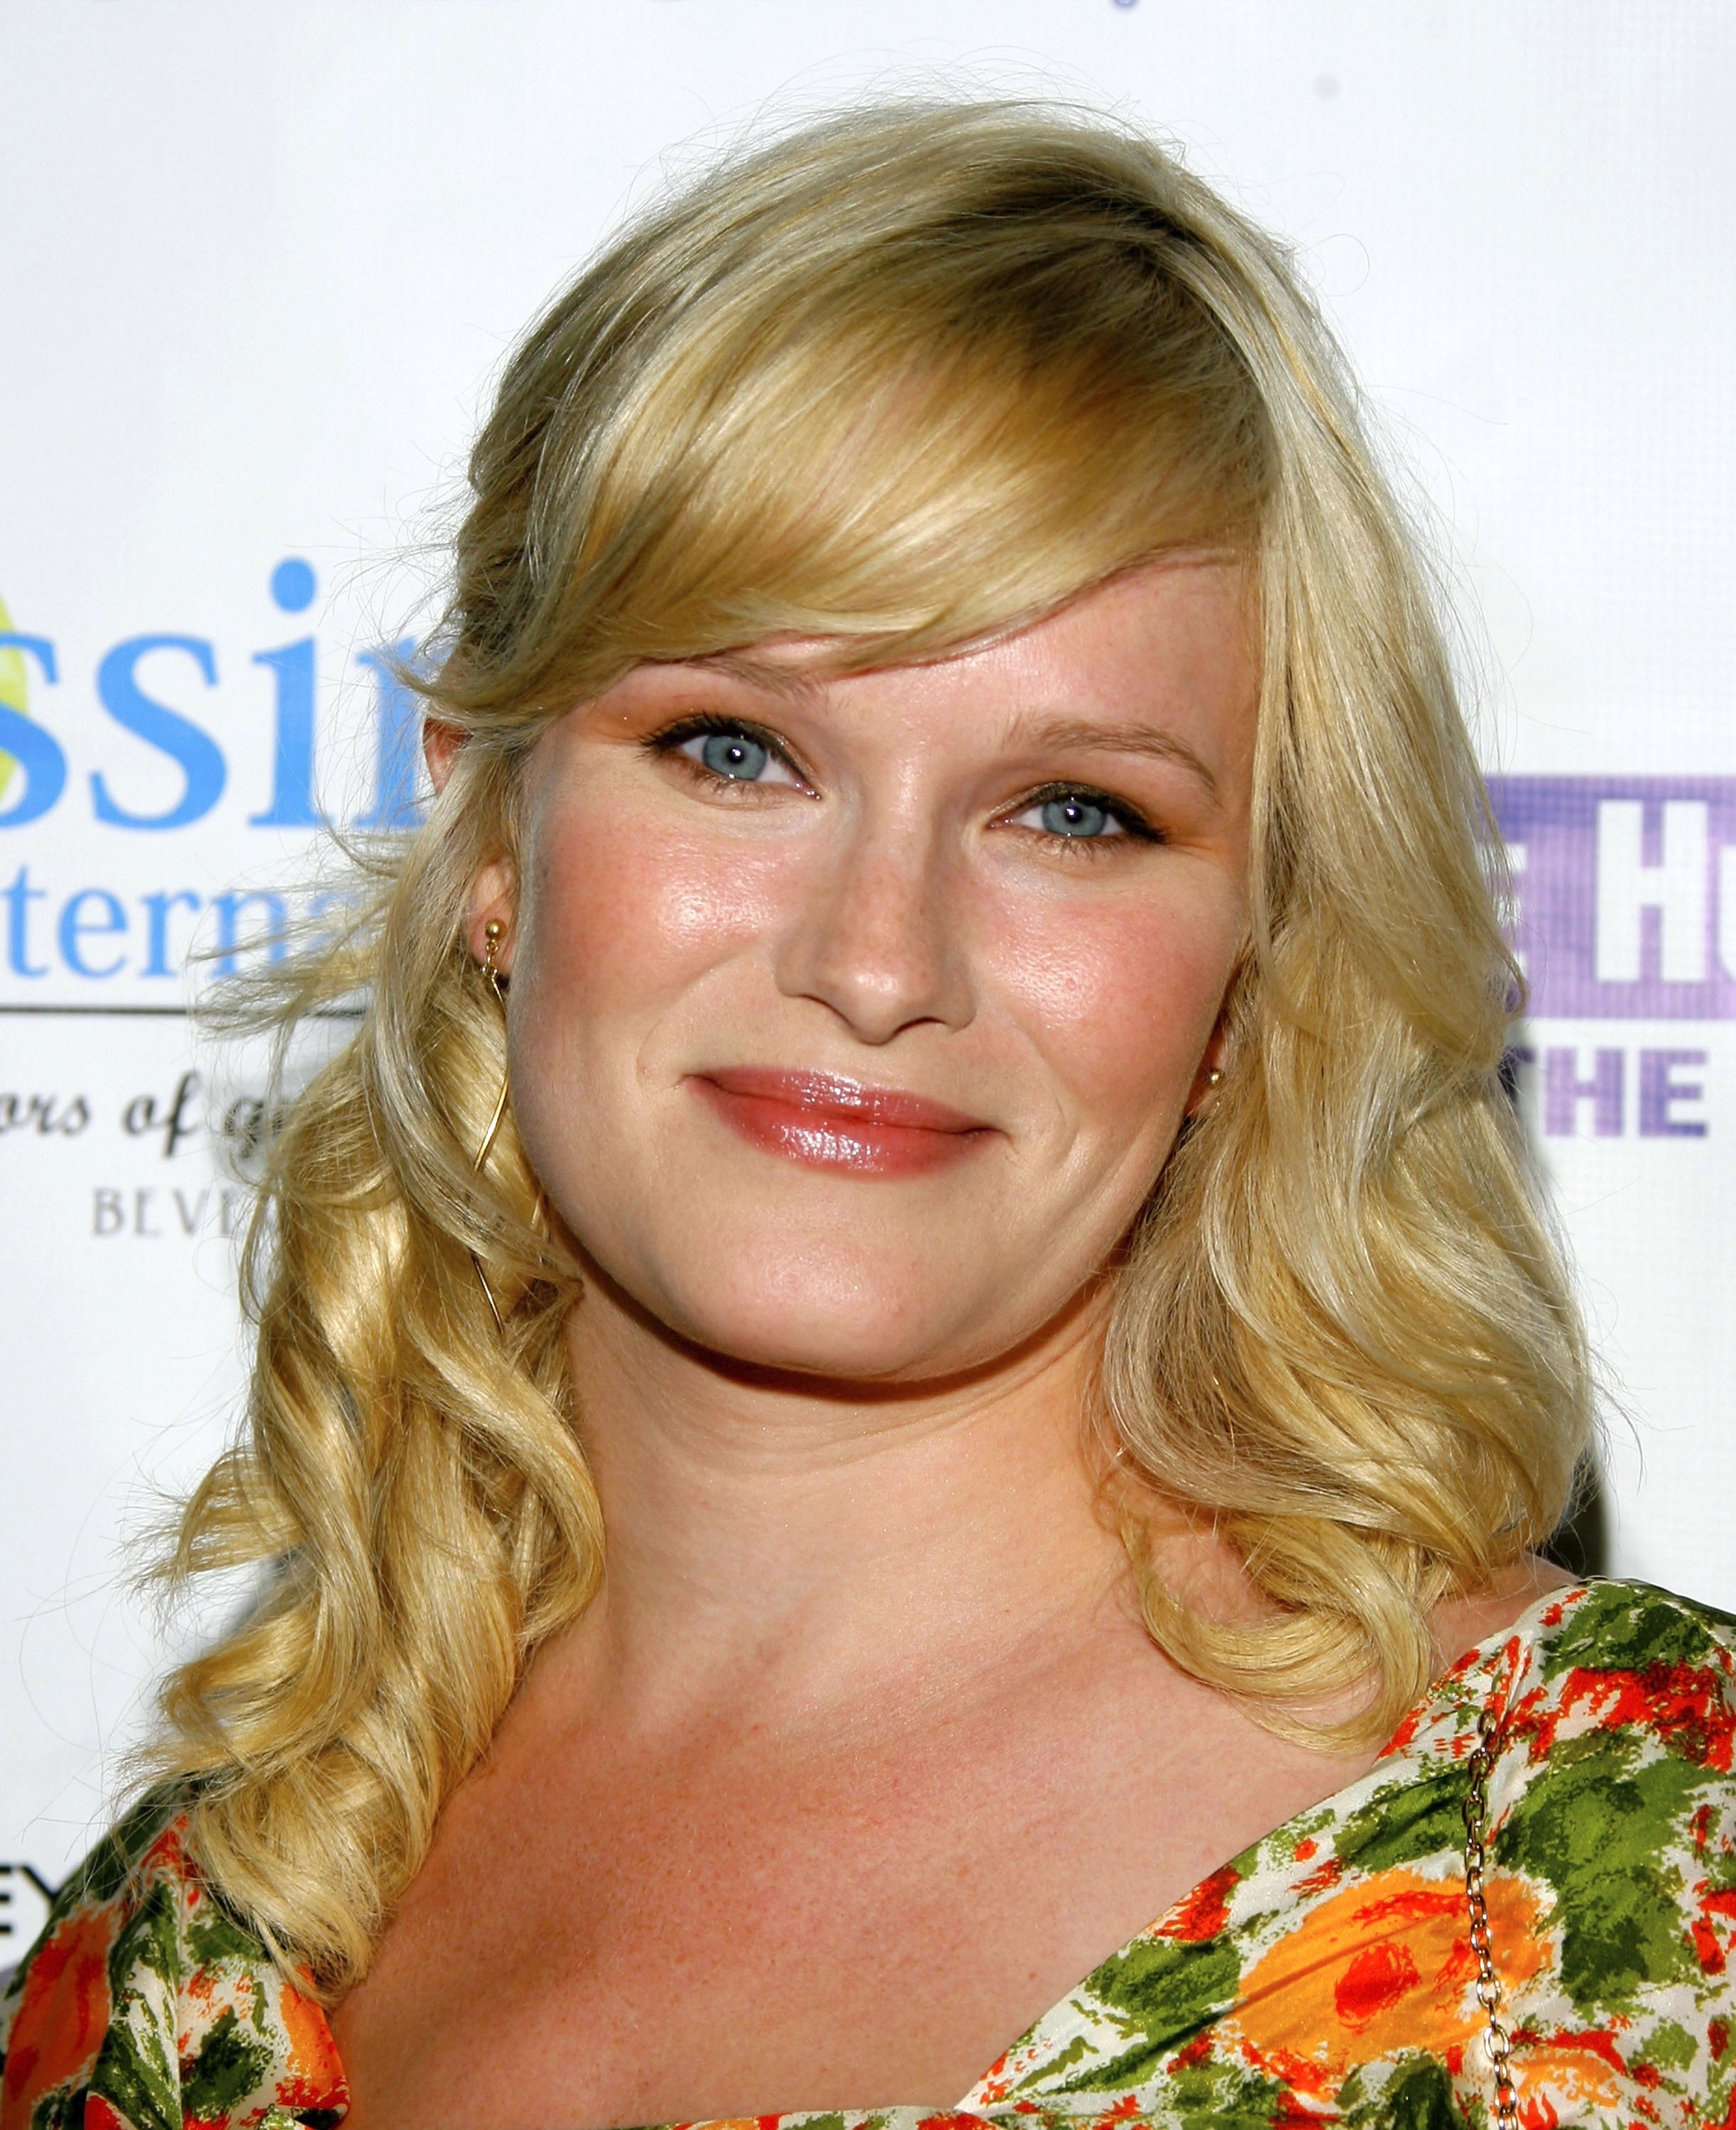 "LOS ANGELES, CA - SEPTEMBER 27: Actress Nicholle Tom attends Issimo Internationals' launch of the candle ""Loyal"" on September 27, 2006 in Los Angeles, California. This candle has been designed to help raise awareness for the Humane Society of the United States. (Photo by Mark Davis/Getty Images)"